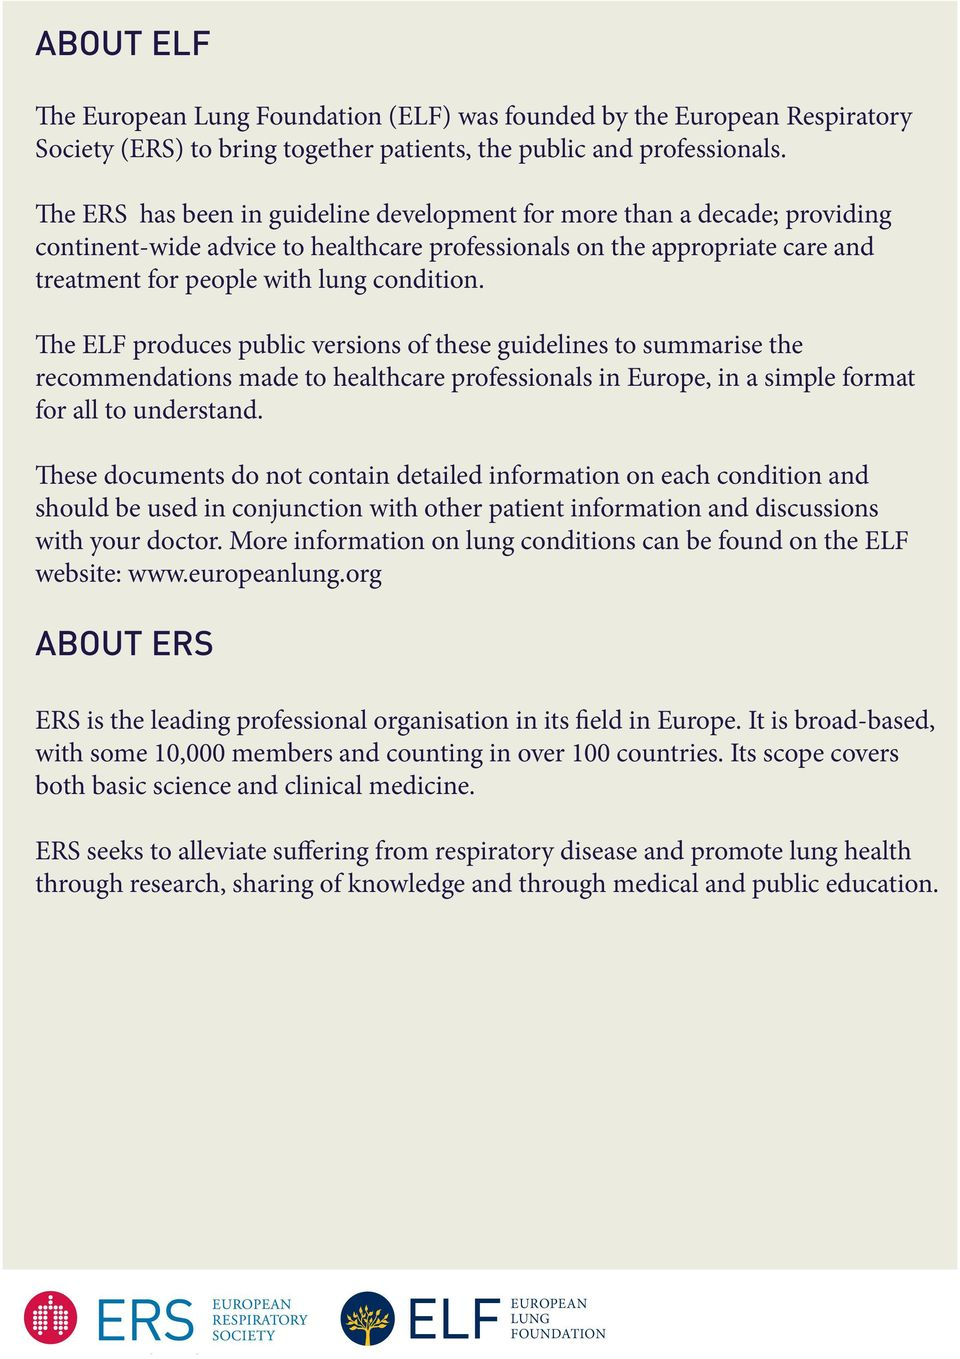 The ELF produces public versions of these guidelines to summarise the recommendations made to healthcare professionals in Europe, in a simple format for all to understand.